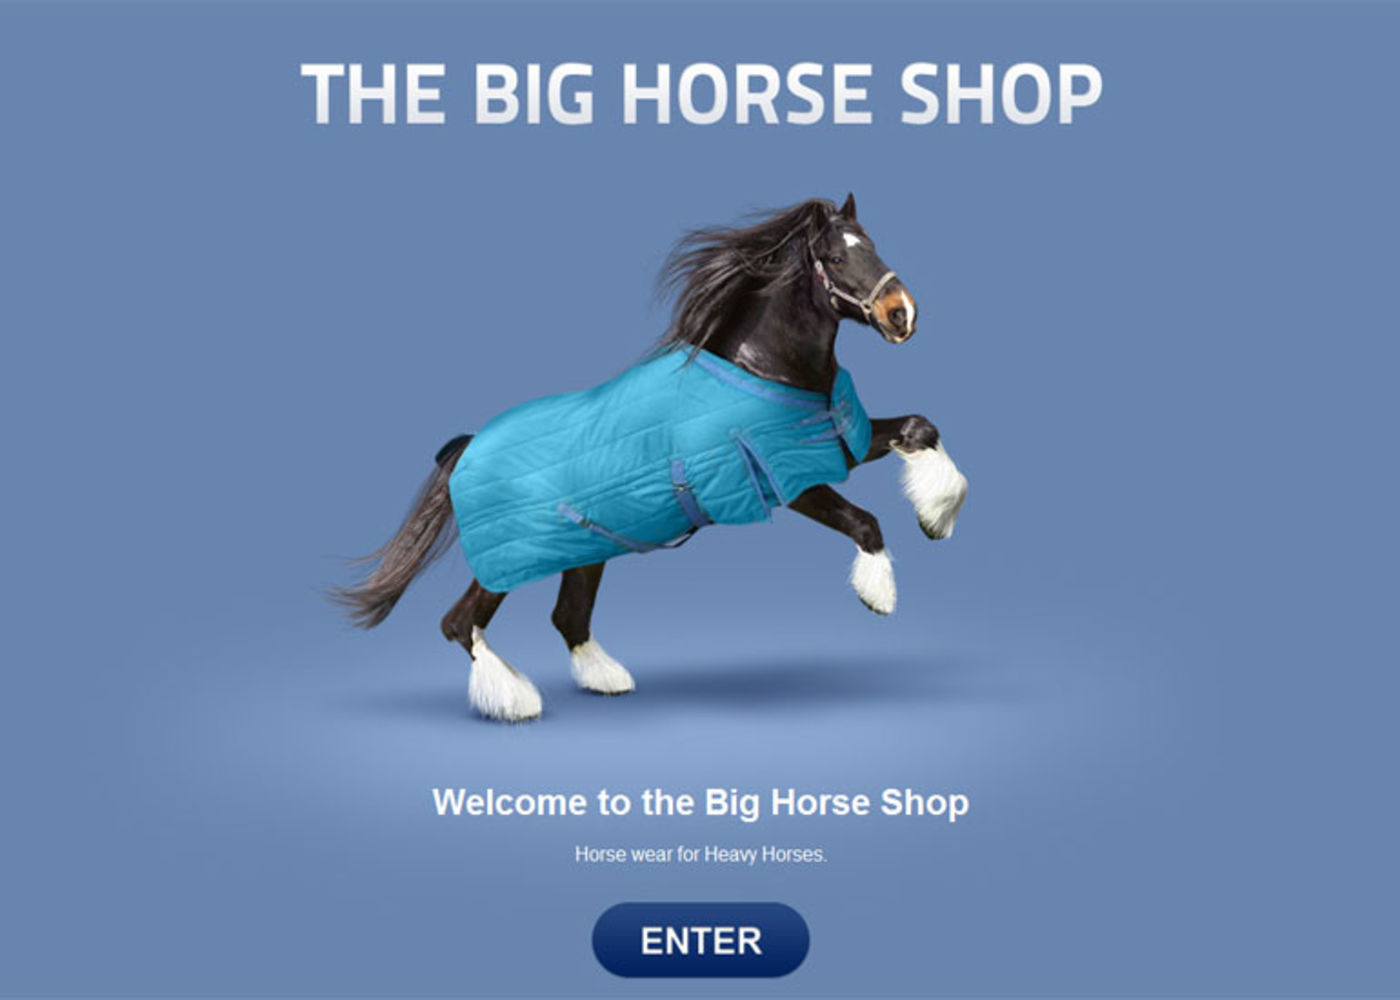 The Big Horse Shop (2009) Welcome